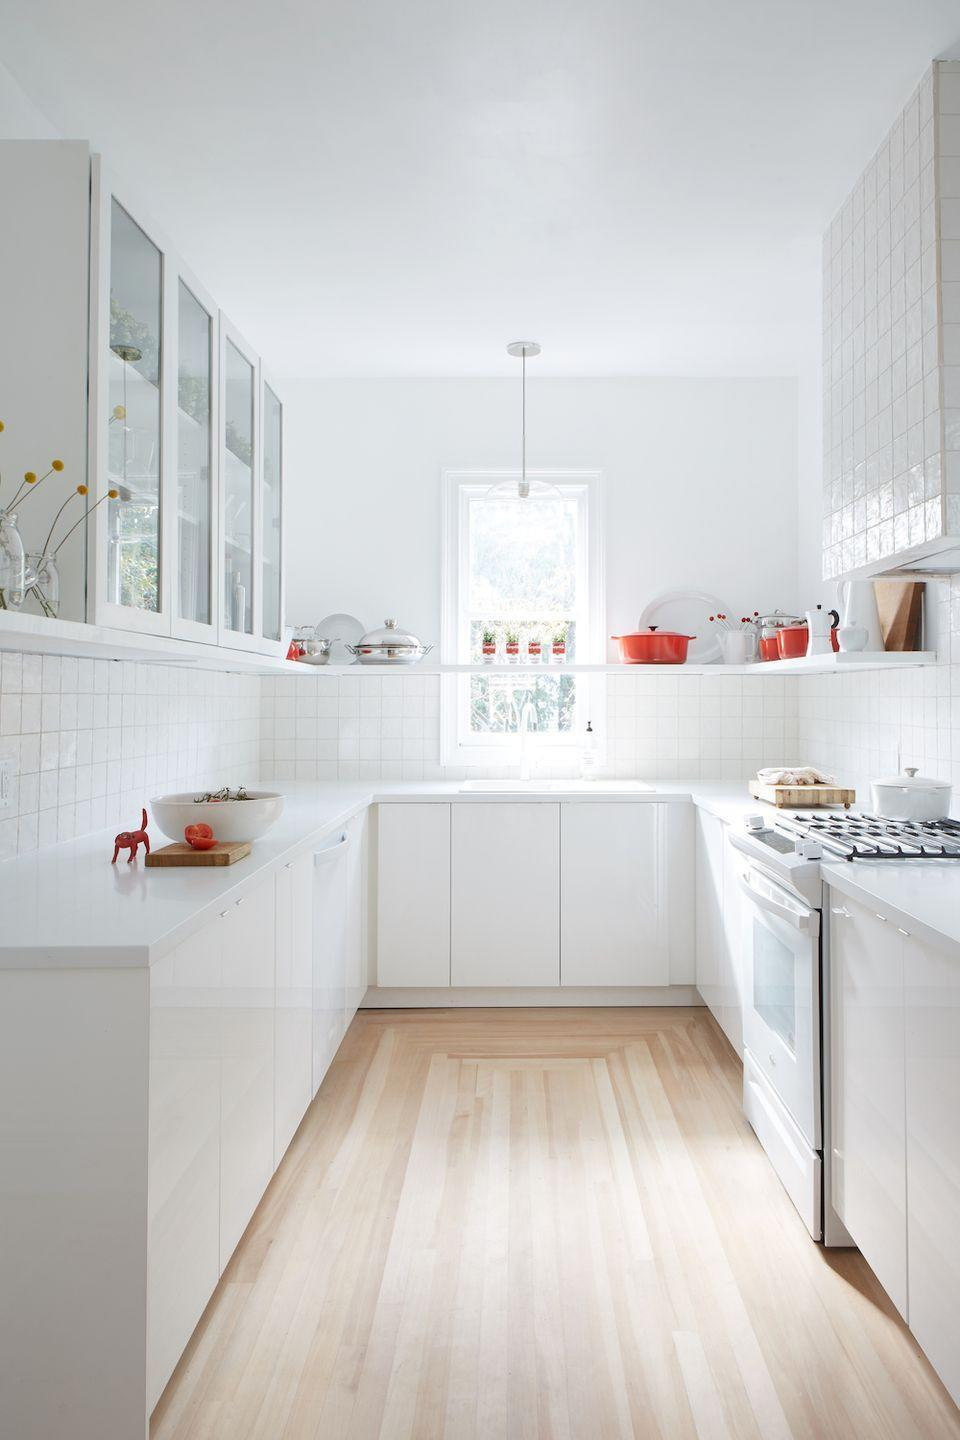 "<p>You can't go wrong with an all-white kitchen. This design trend, as mastered by Leanne ford here, is particularly well-suited for the room where cleanliness is essential. The pops of red cookware break thing up just enough, and we also love the <a href=""https://www.housebeautiful.com/design-inspiration/celebrity-homes/a26930340/leanne-ford-soup-can-planter/"" rel=""nofollow noopener"" target=""_blank"" data-ylk=""slk:upcycled soup cans"" class=""link rapid-noclick-resp"">upcycled soup cans </a>for an affordable decor solution channeling pop art. </p>"